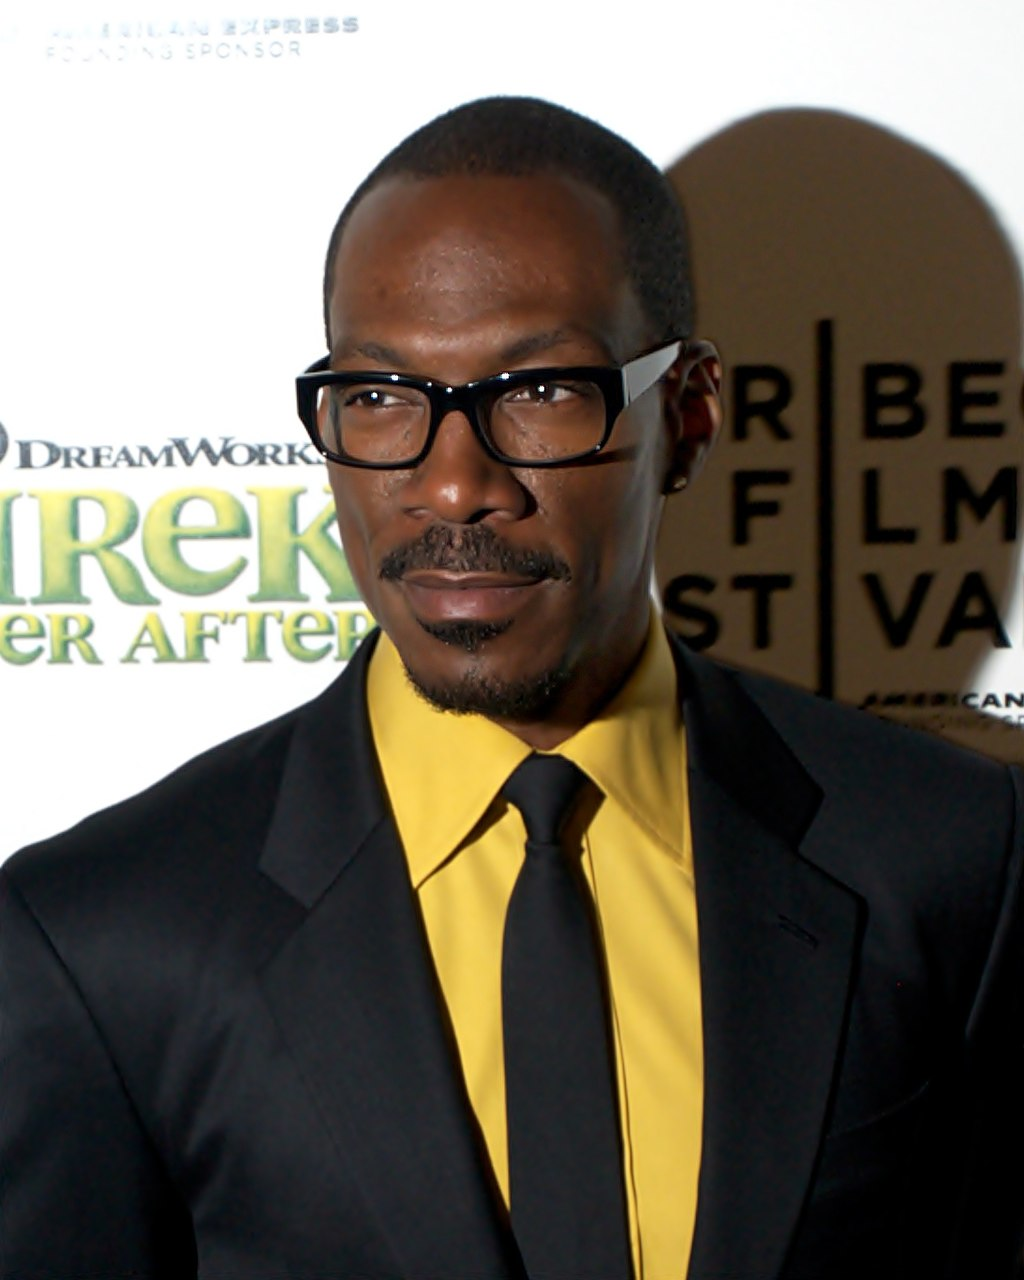 Eddie Murphy - Eddie Murphy and his older brother Charlie Murphy went into foster care for a year after his mother became ill. Interestingly, Eddie's sense of humor was influenced from when he was in foster care. He is an actor, writer, comedian, singer, producer.[image from Wiki]